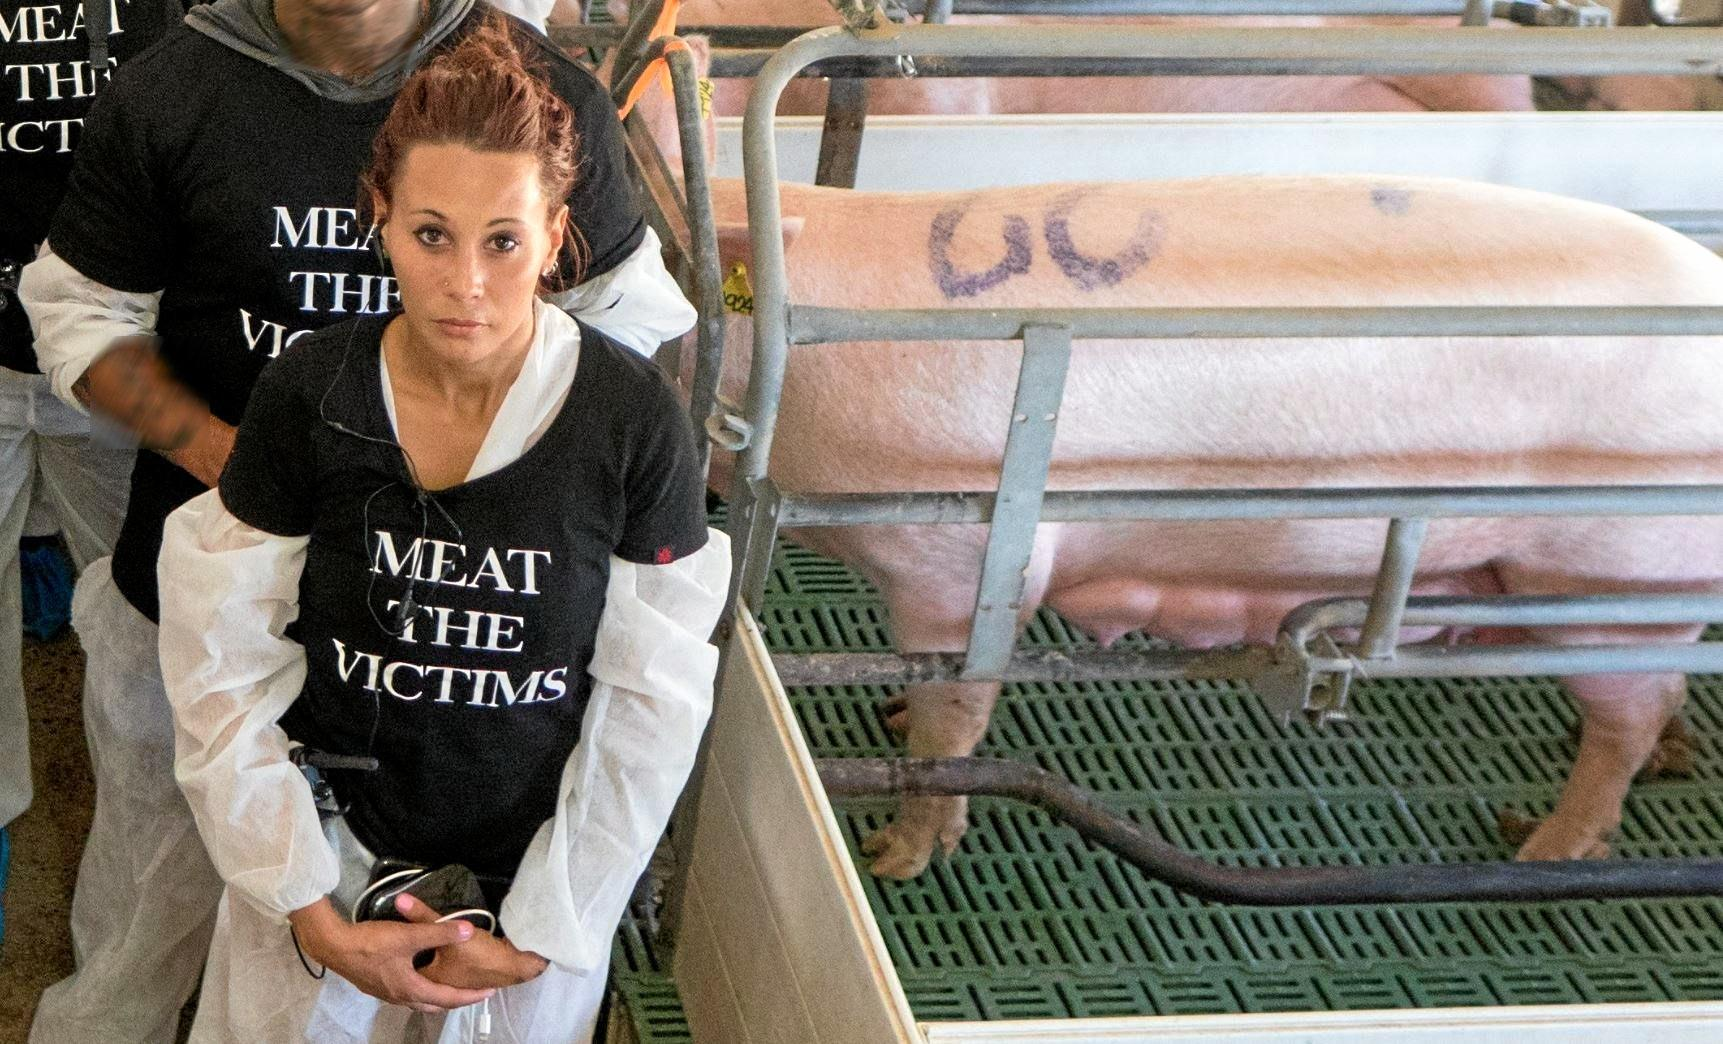 Leah Ava Whetten was charged with trespassing onto Glasshouse Country Farm. She is pictured at the Beerburrum business in a separate protest on December last year, which was not the subject of her charge.